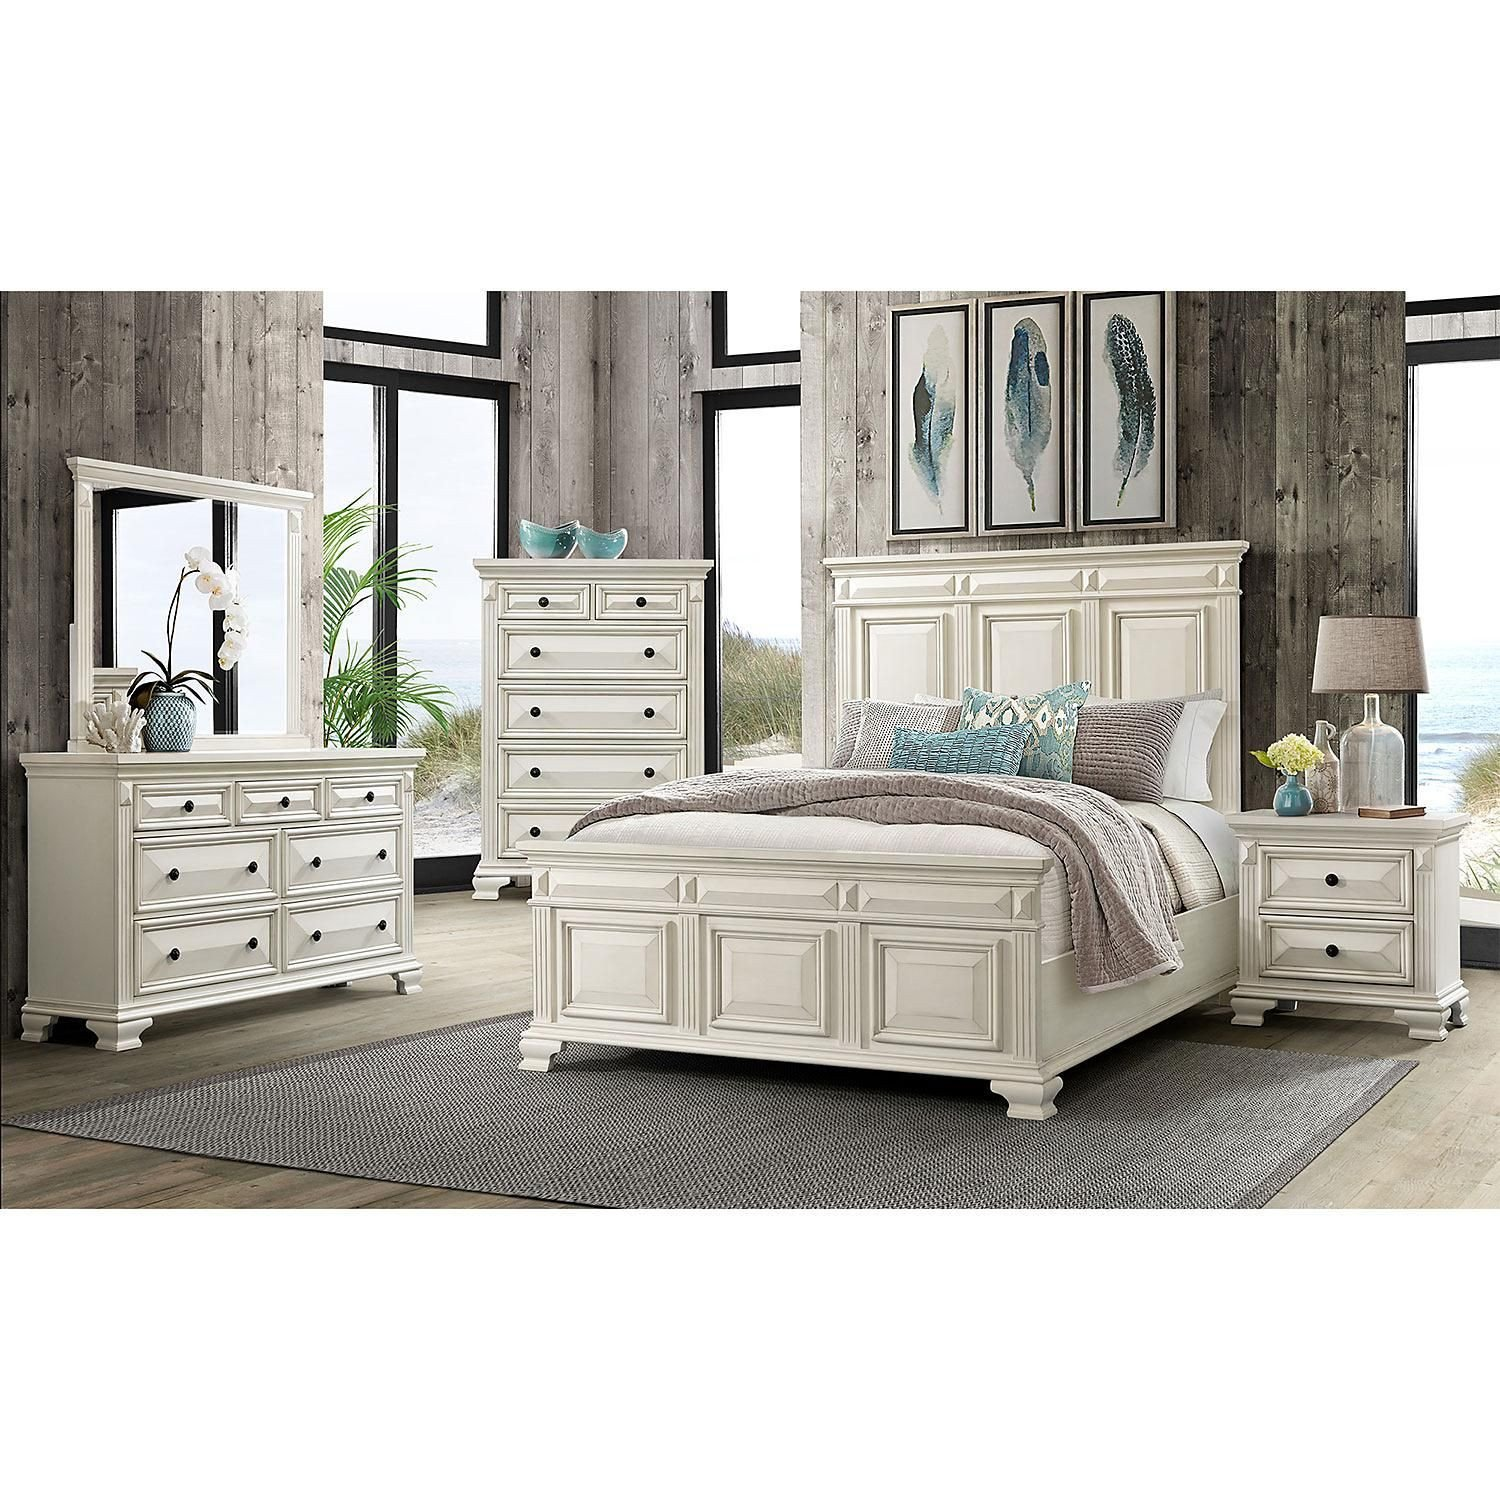 Full Size Bedroom Set Beautiful $1599 00 society Den Trent Panel 6 Piece King Bedroom Set